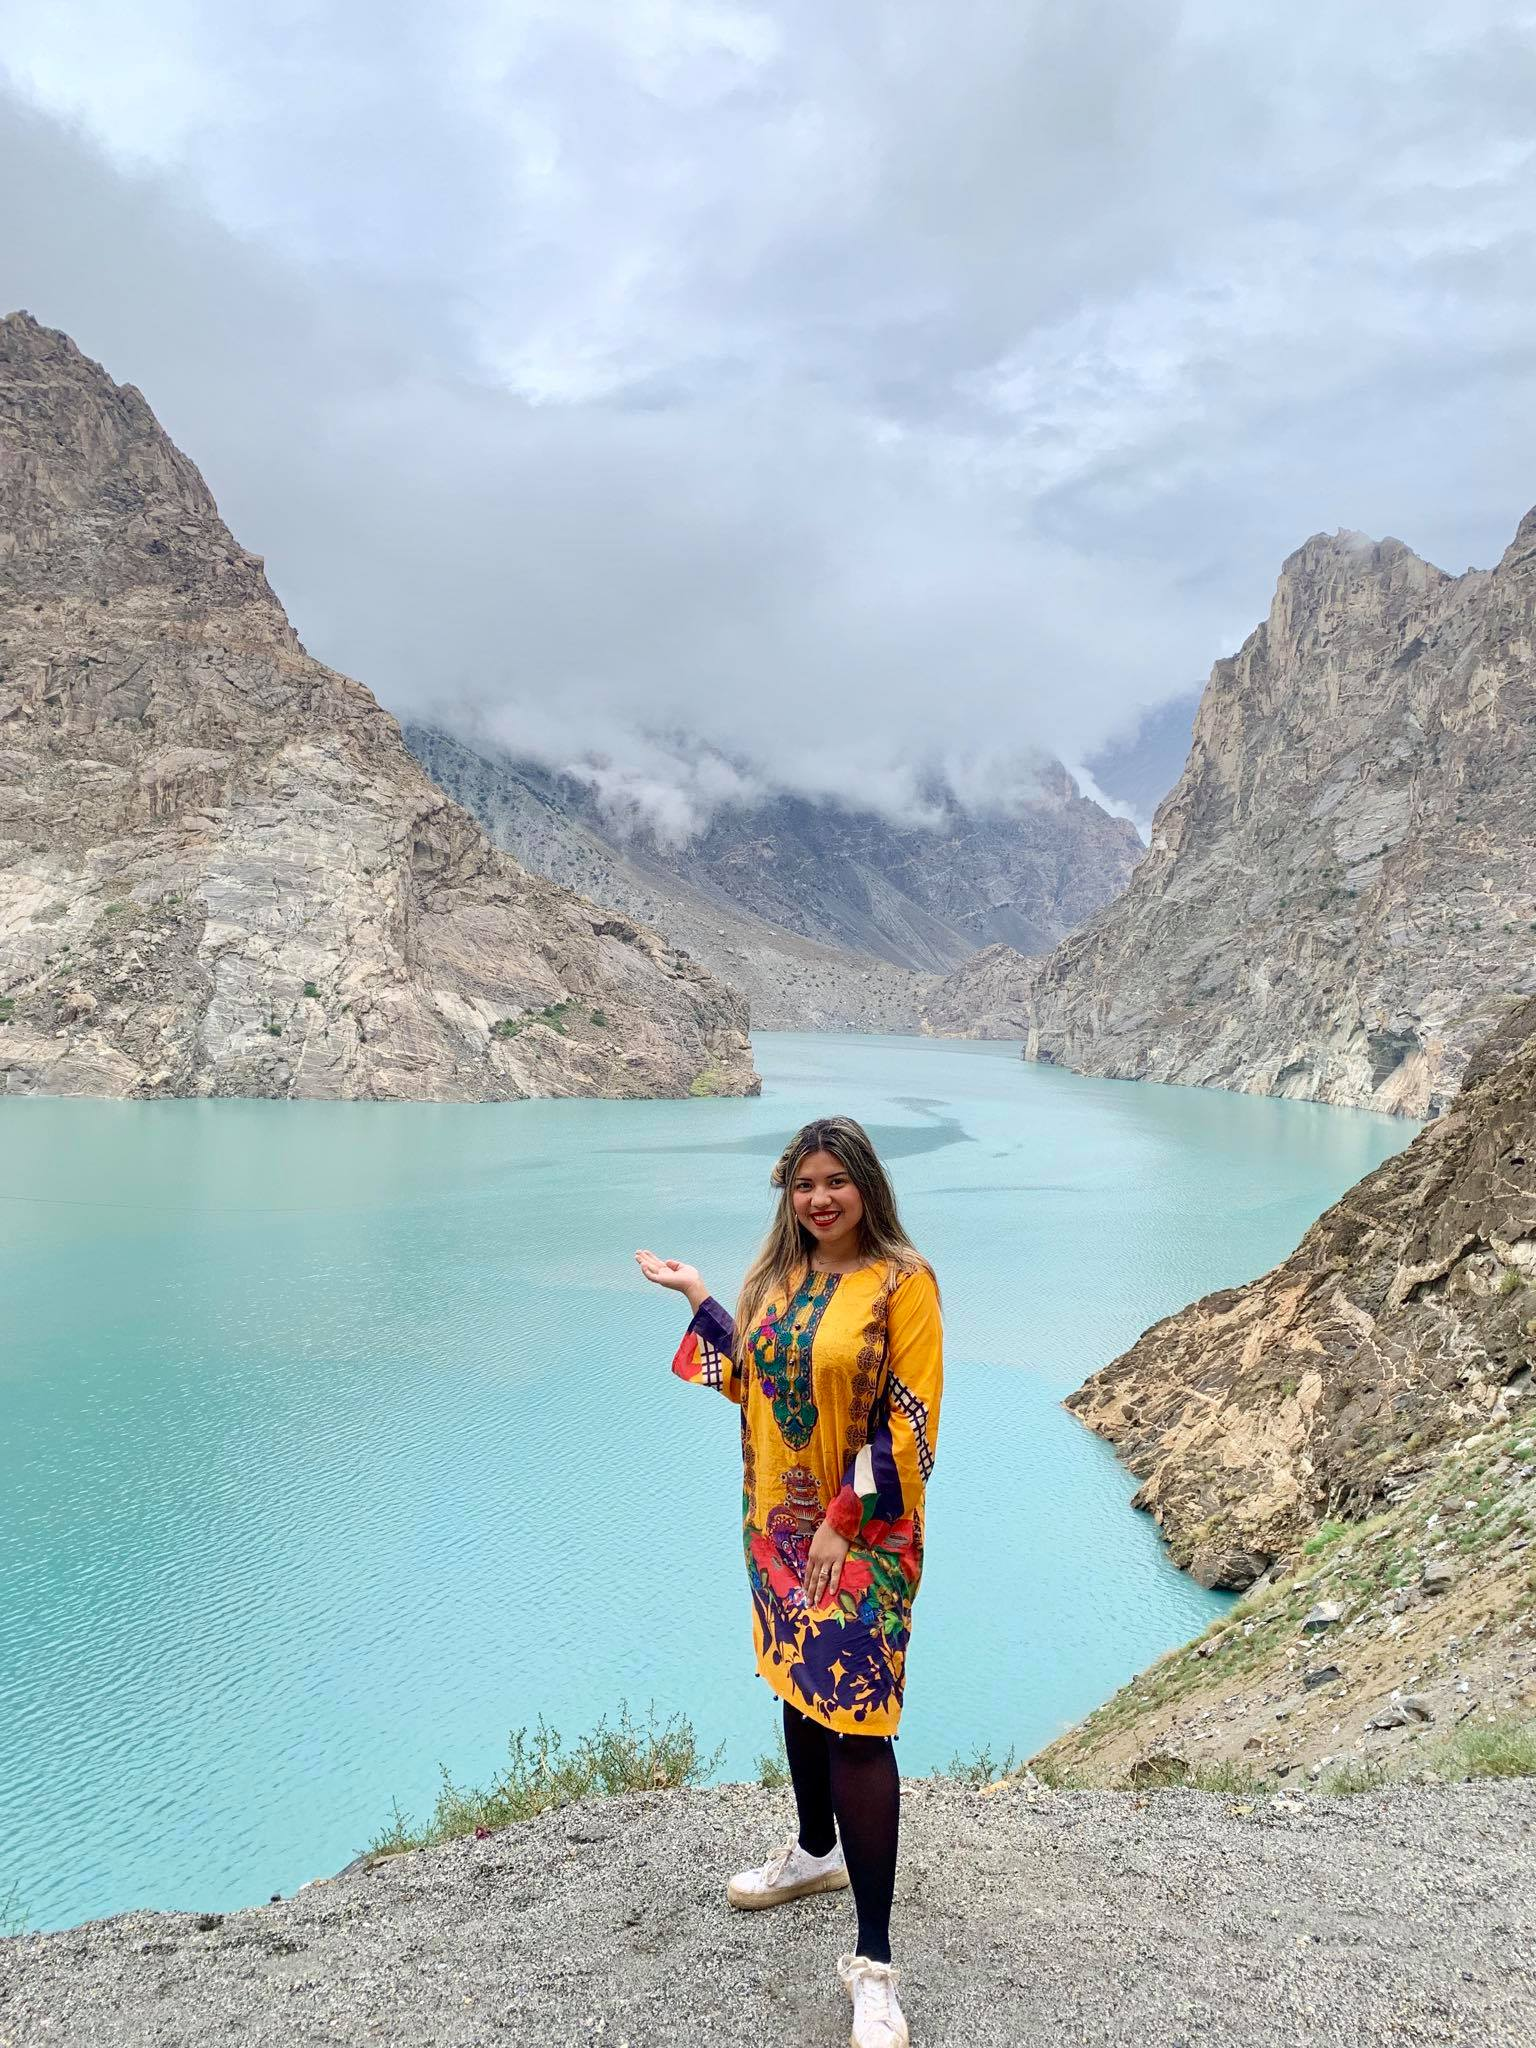 Kach Solo Travels in 2019 Driving in North Hunza Valley to Khunjerab Pass5.jpg